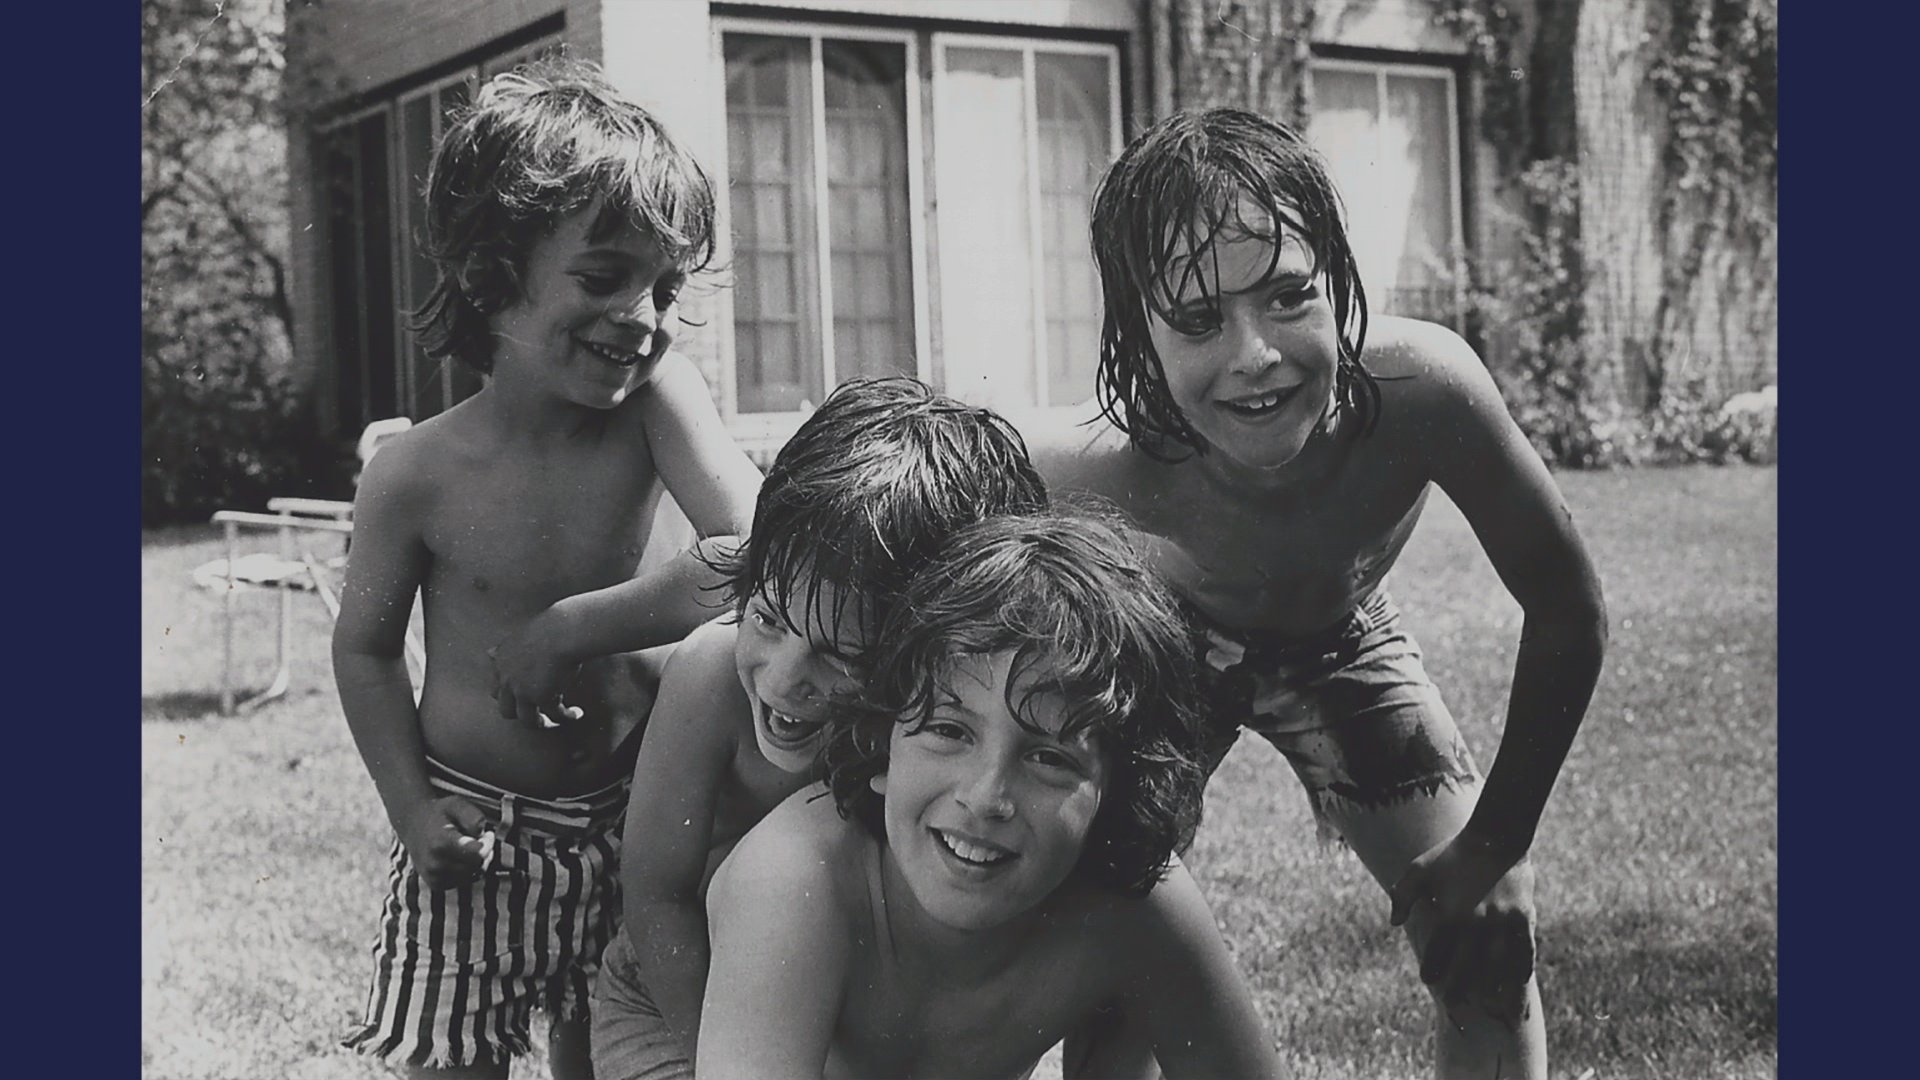 Adam and David Rudman, along with their two brothers, play in the backyard of their family home as kids.